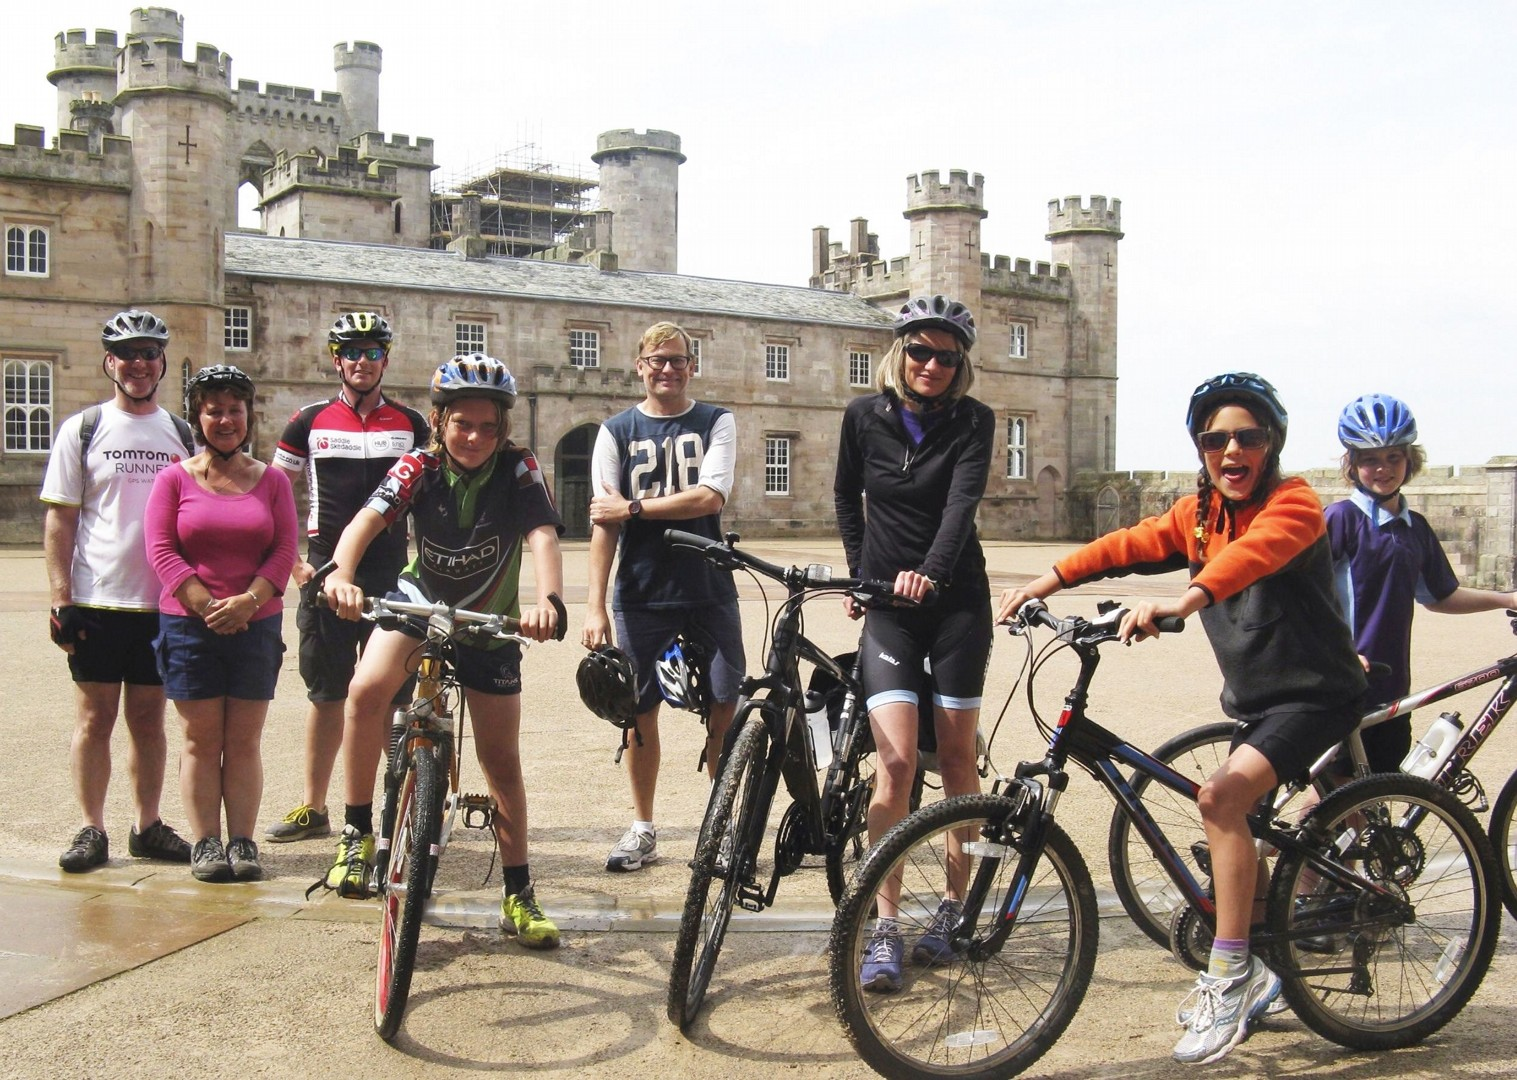 castles-lake-district-family-cycling-holiday.jpg - UK - Lake District - Guided Family Bike Skills - Family Cycling